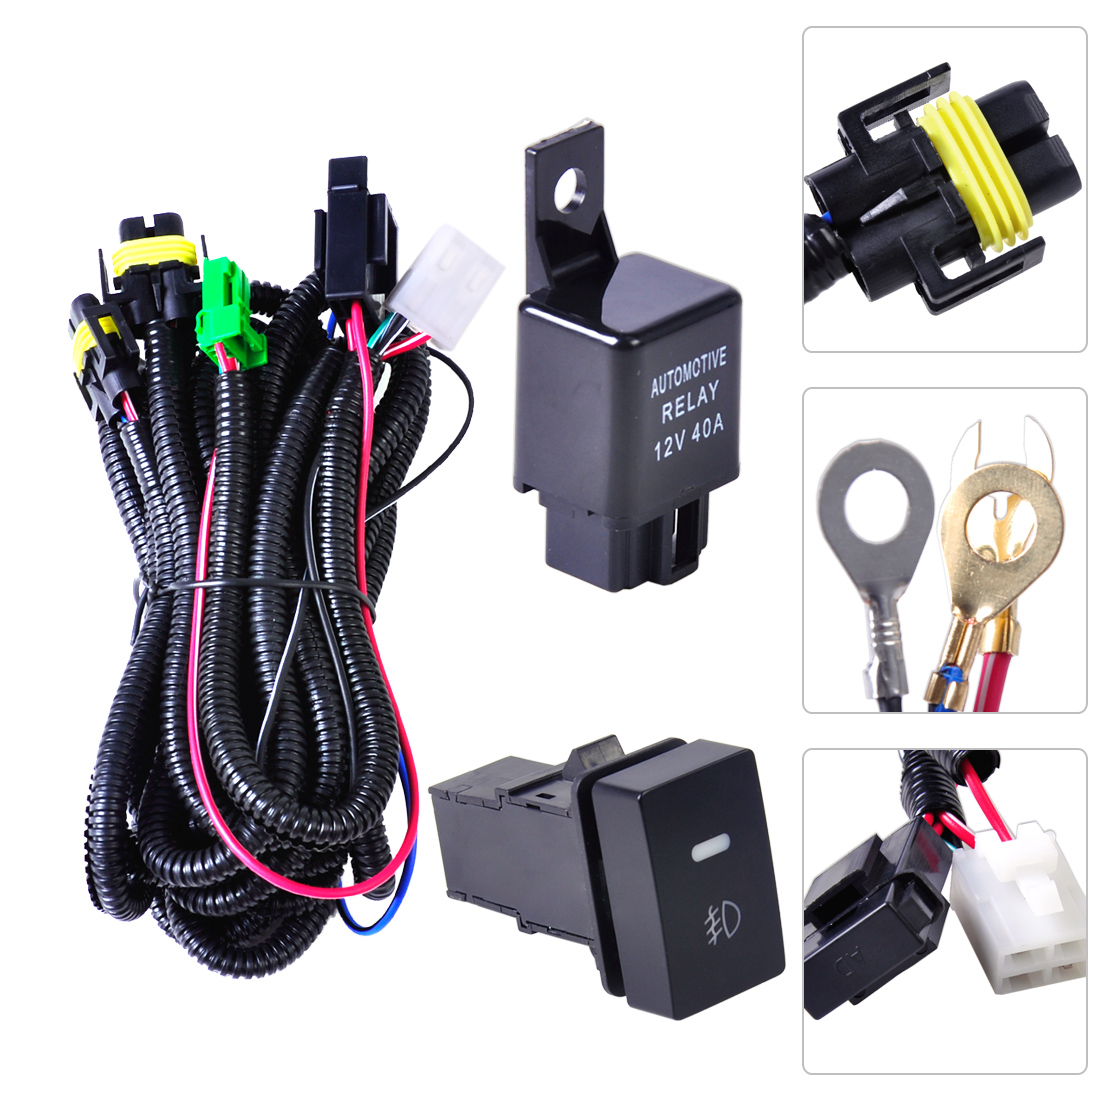 medium resolution of dwcx wiring harness sockets wire switch for h11 fog light lamp for ford focus acura